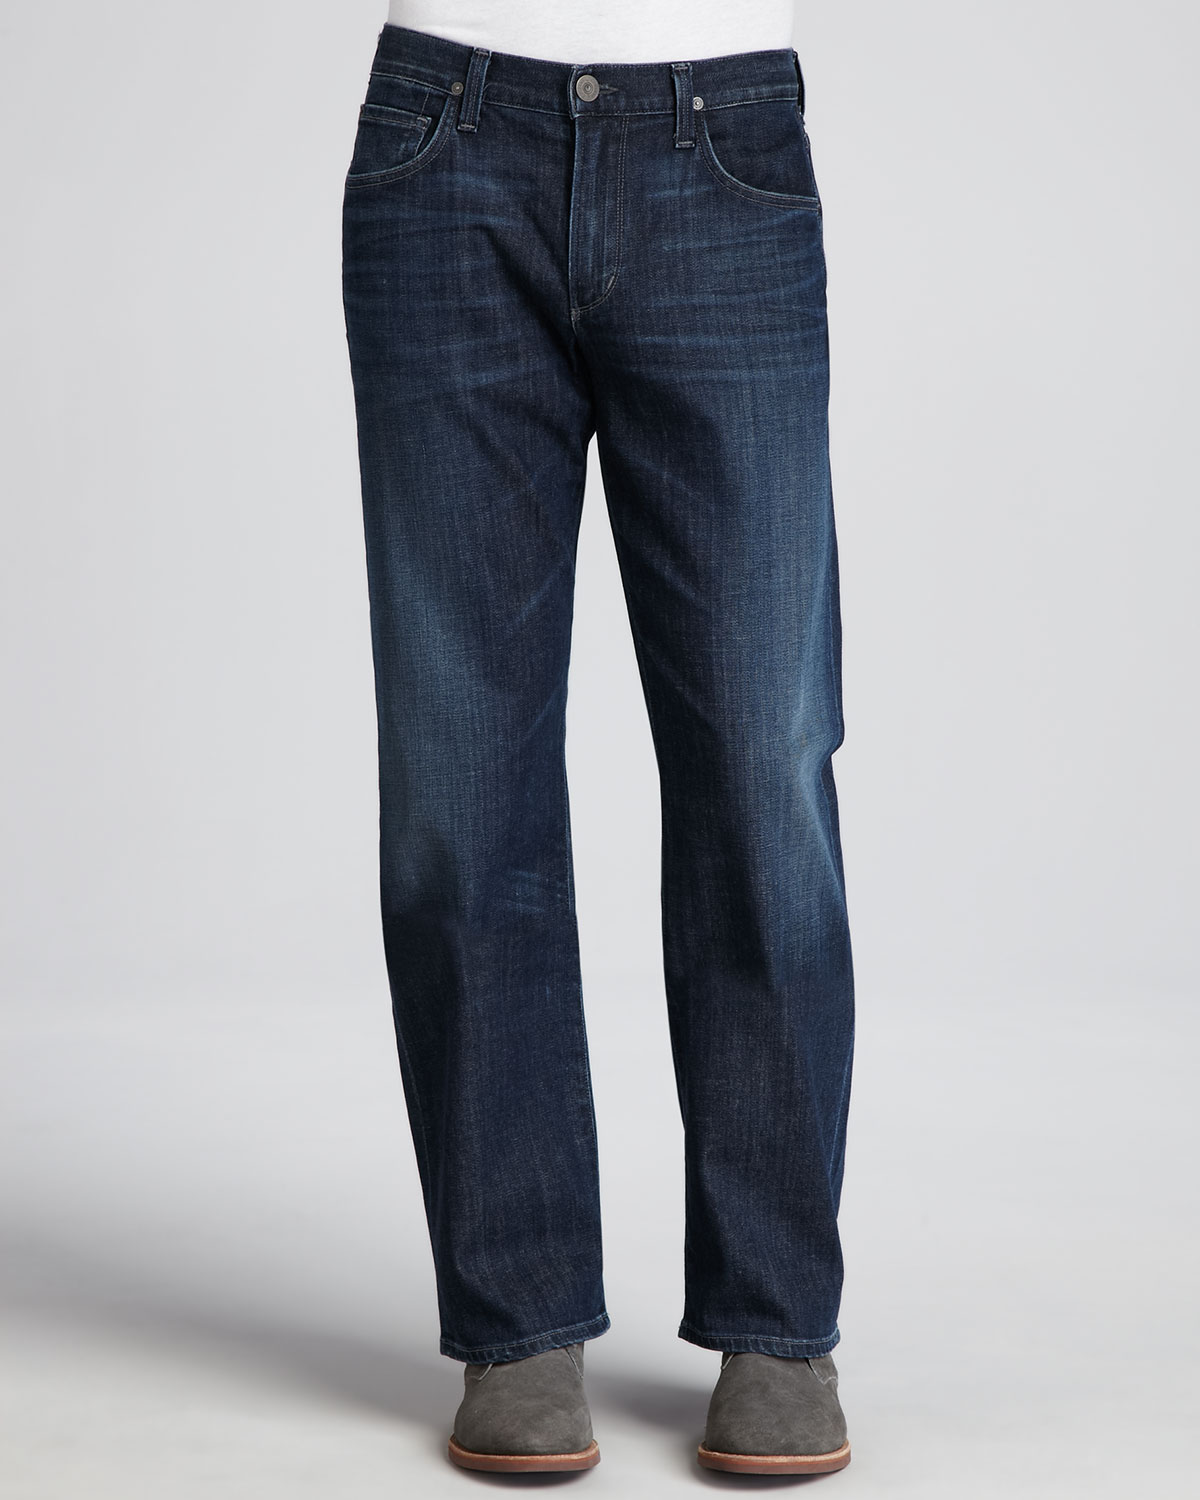 Mens Evans Relaxed Fit Jeans, Ricky   Citizens of Humanity   Medium blue (31)